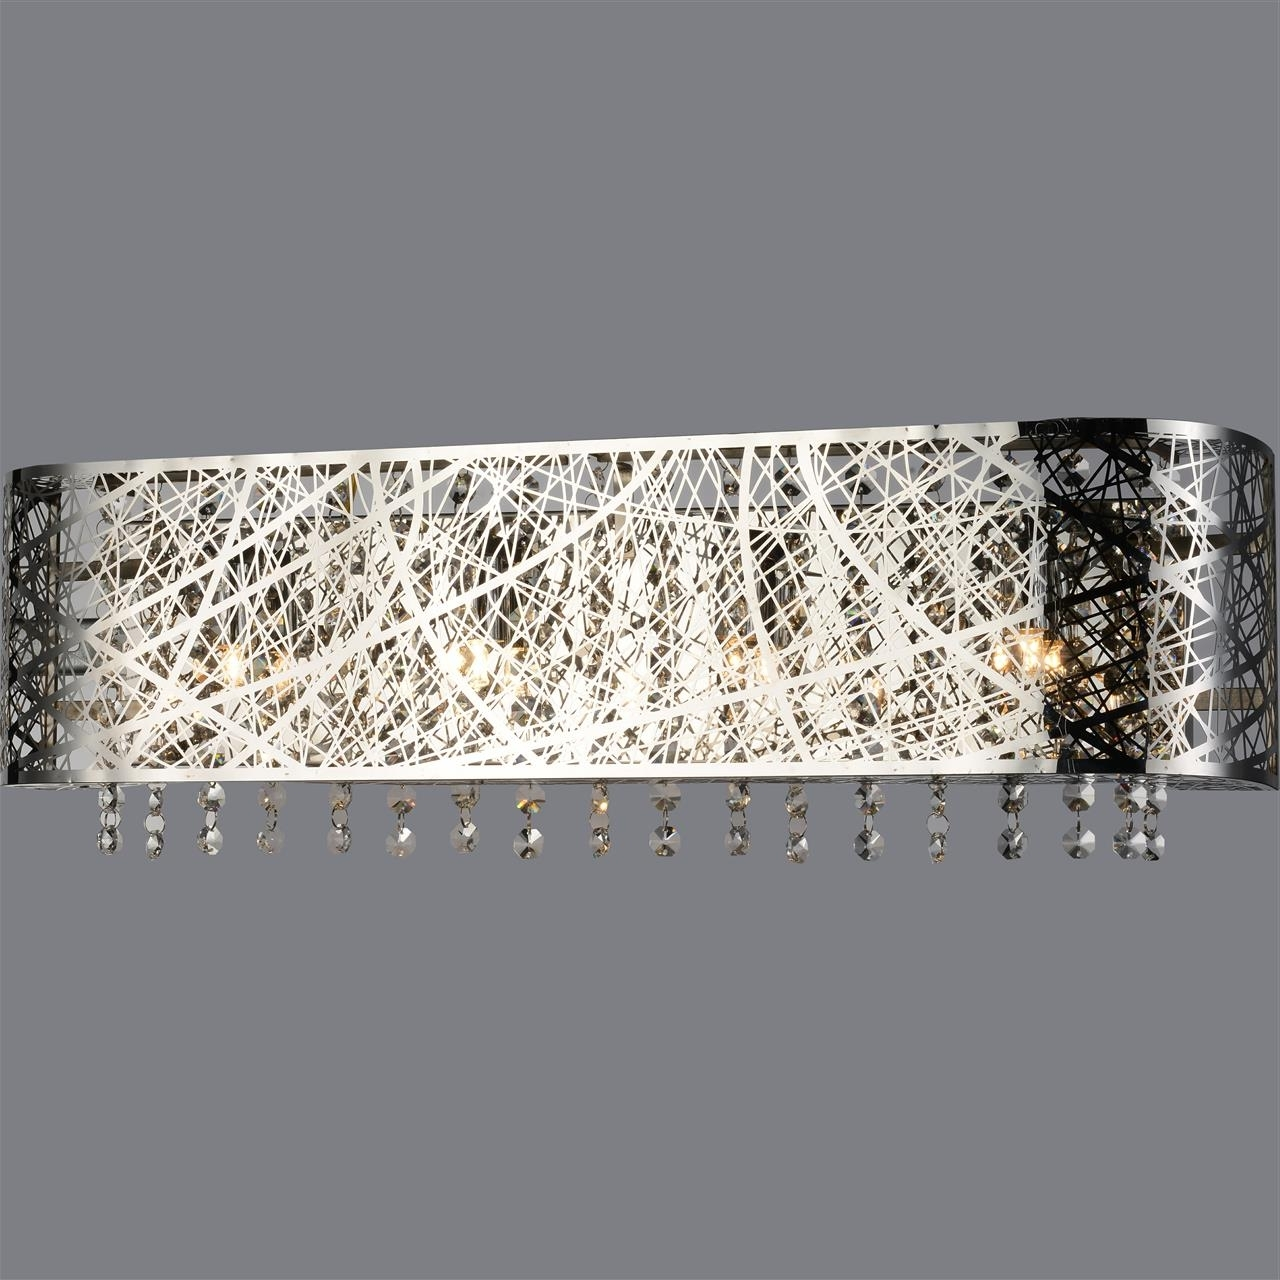 Chandelier Bathroom Vanity Lighting Intended For 2019 Brizzo Lighting Stores (View 5 of 20)